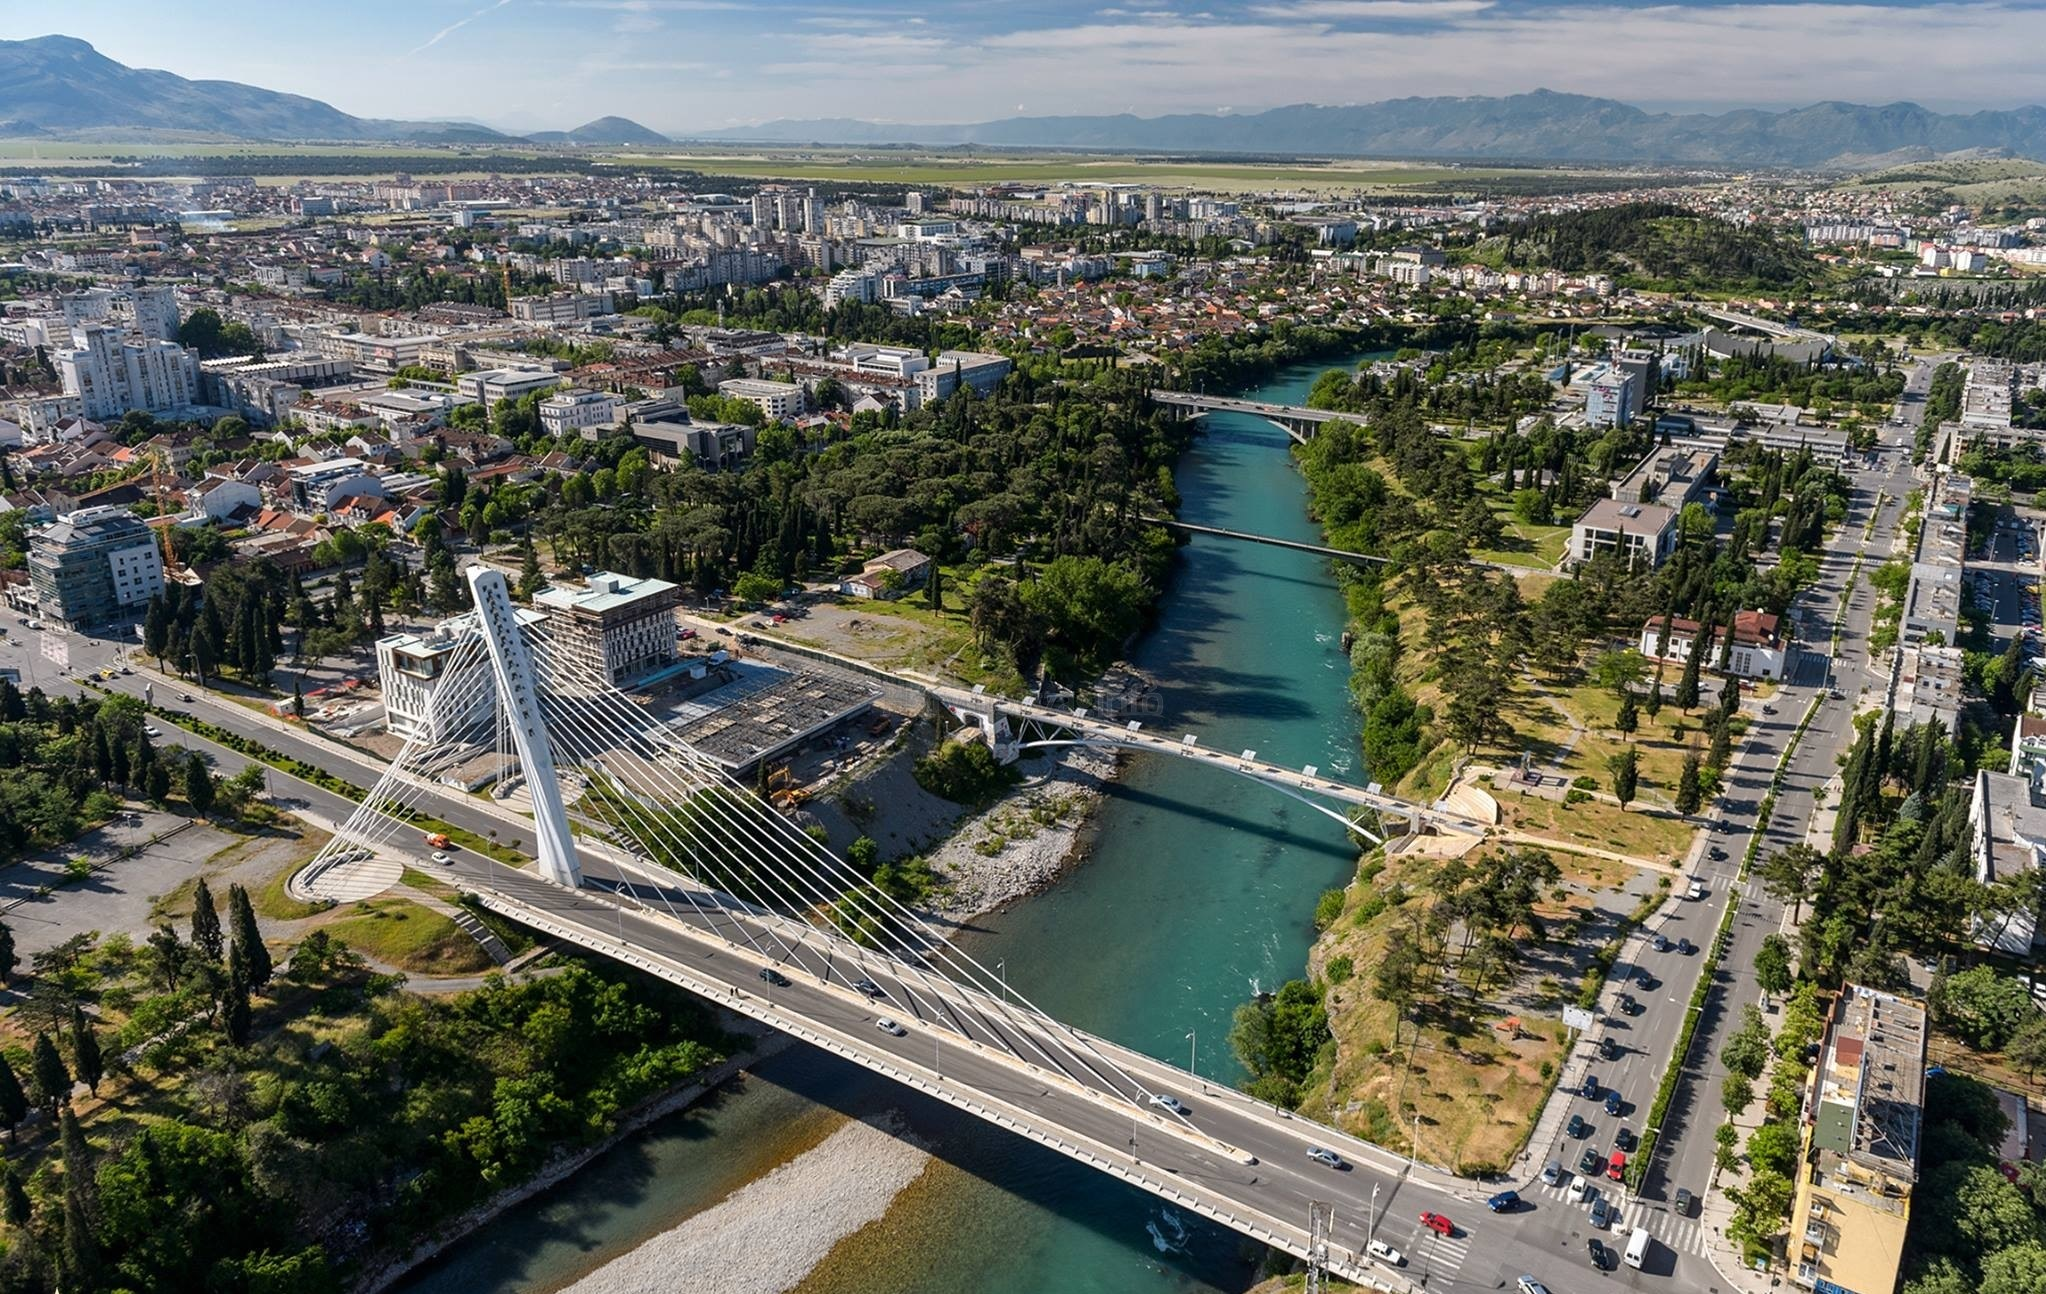 HOLIDAY IN PODGORICA